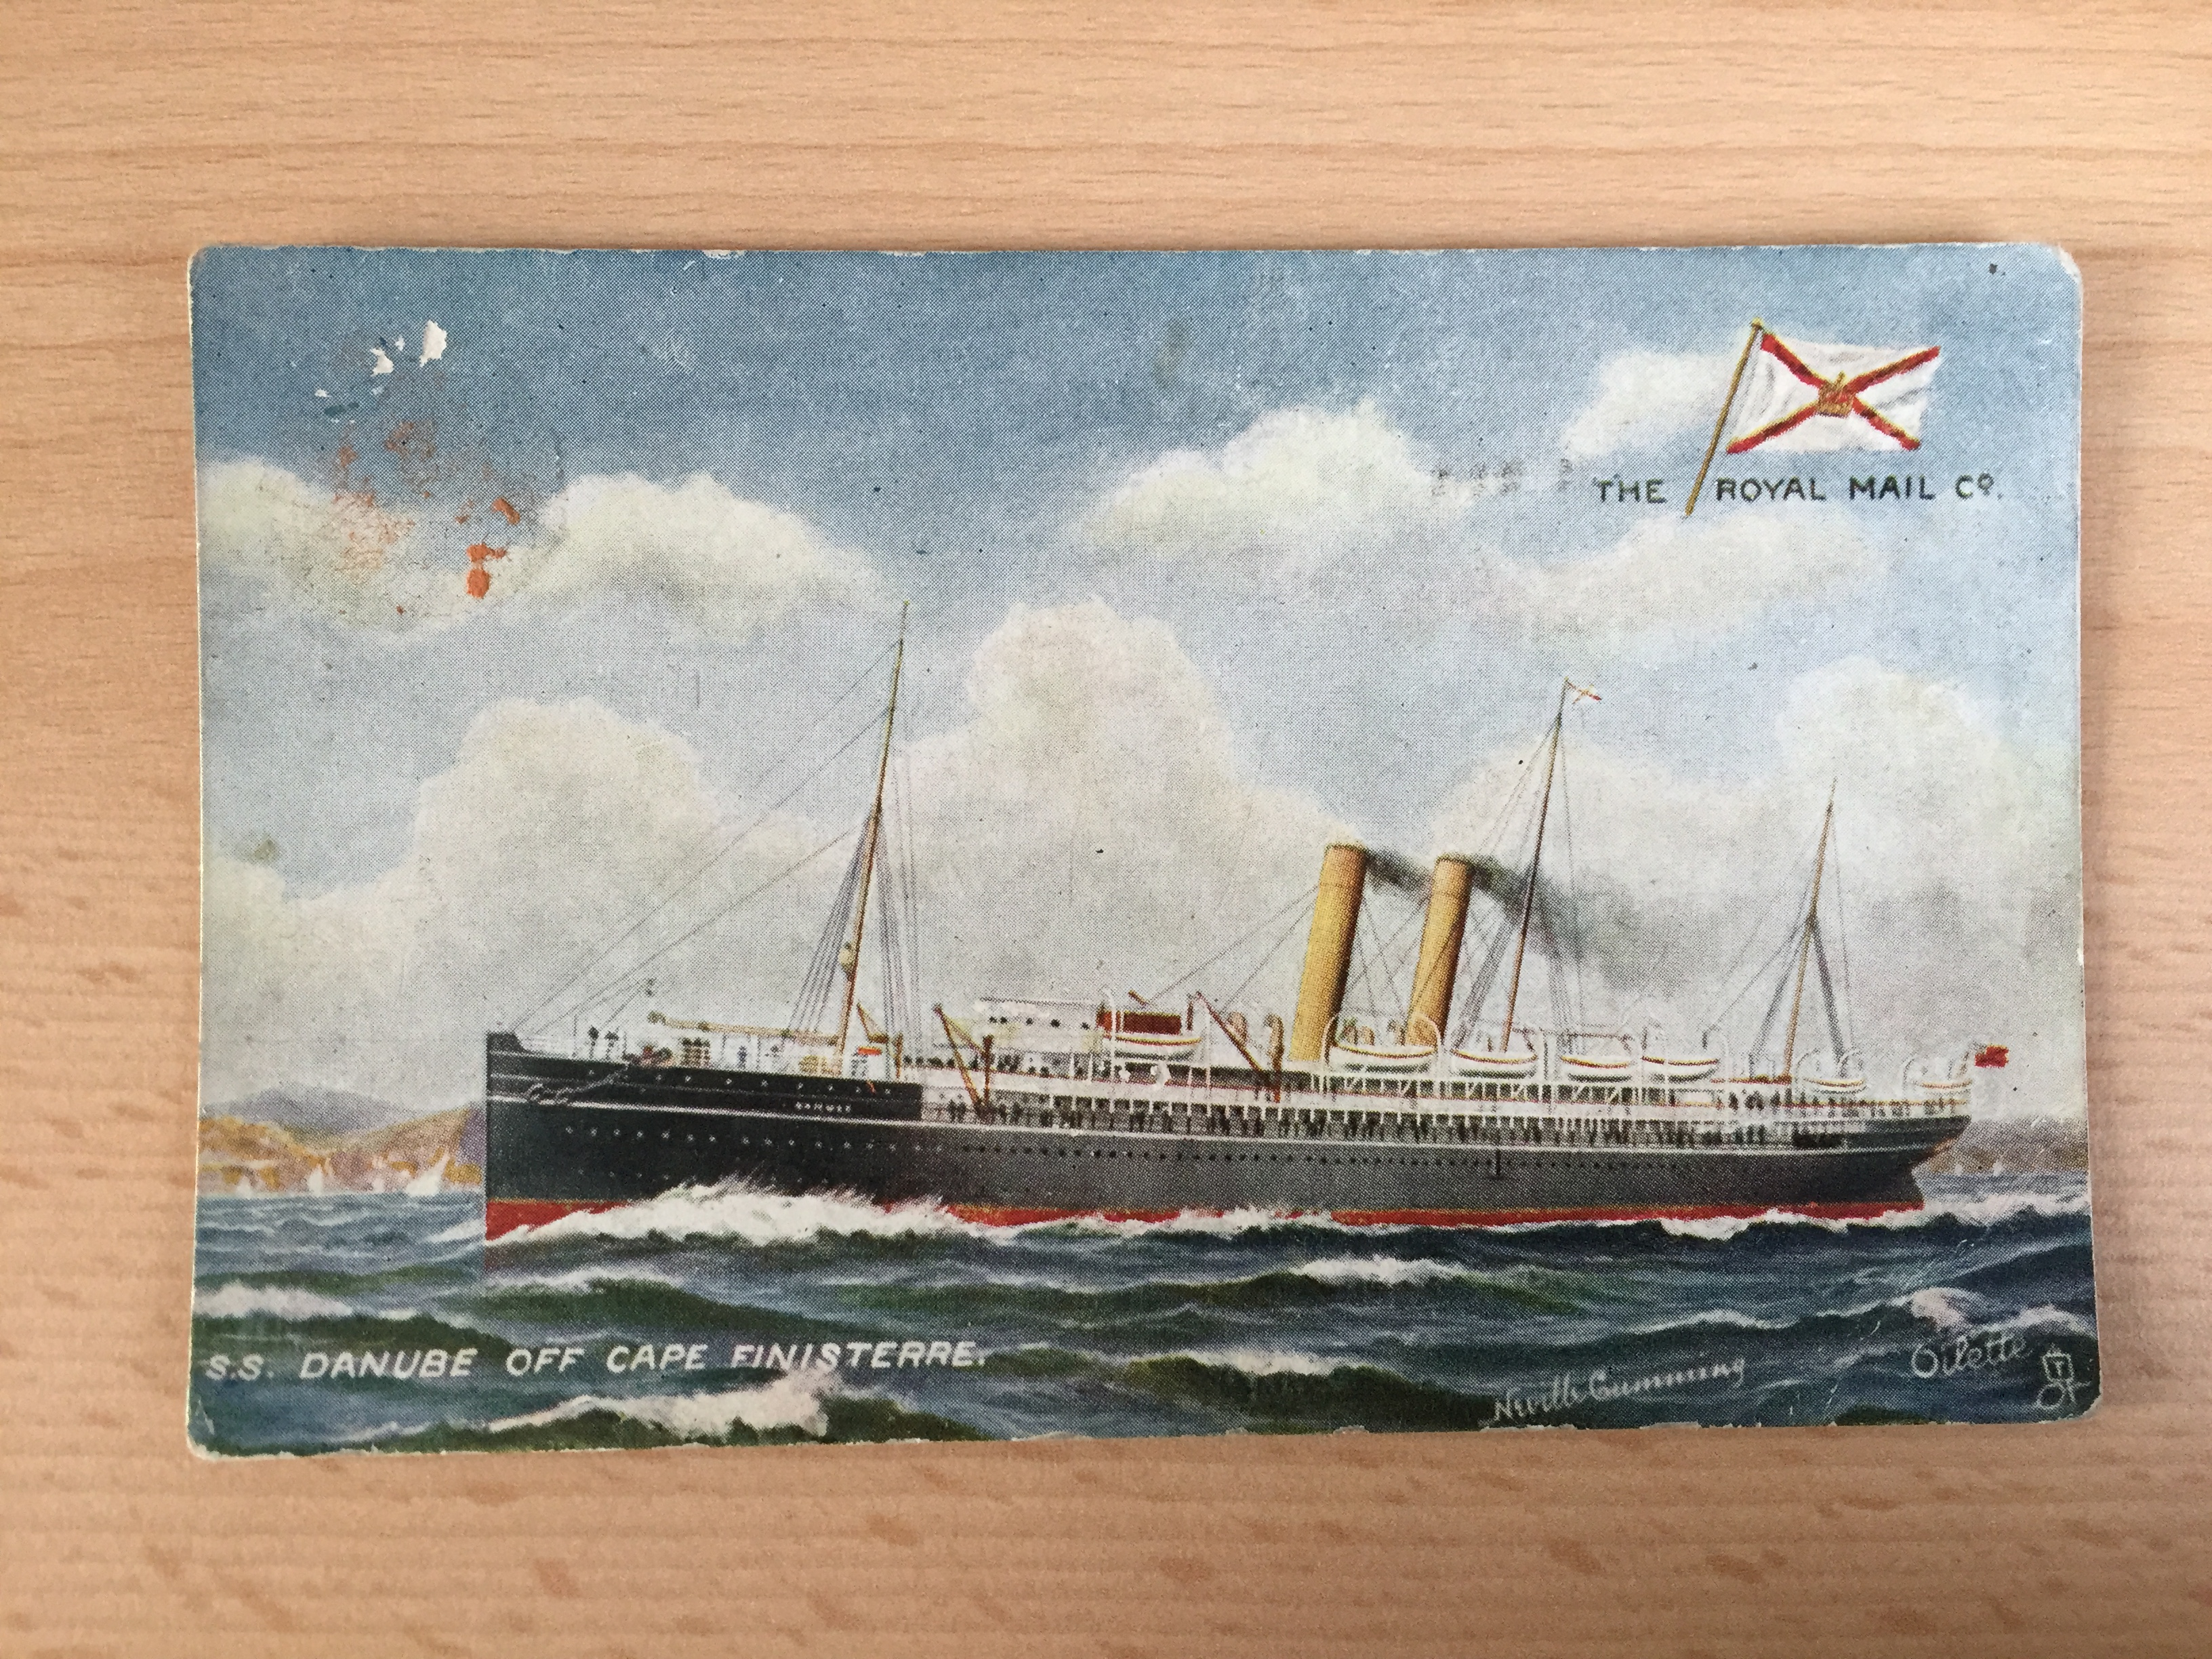 UNUSED VERY EARLY COLOUR POSTCARD FROM THE ROYAL MAIL LINE VESSEL THE DANUBE